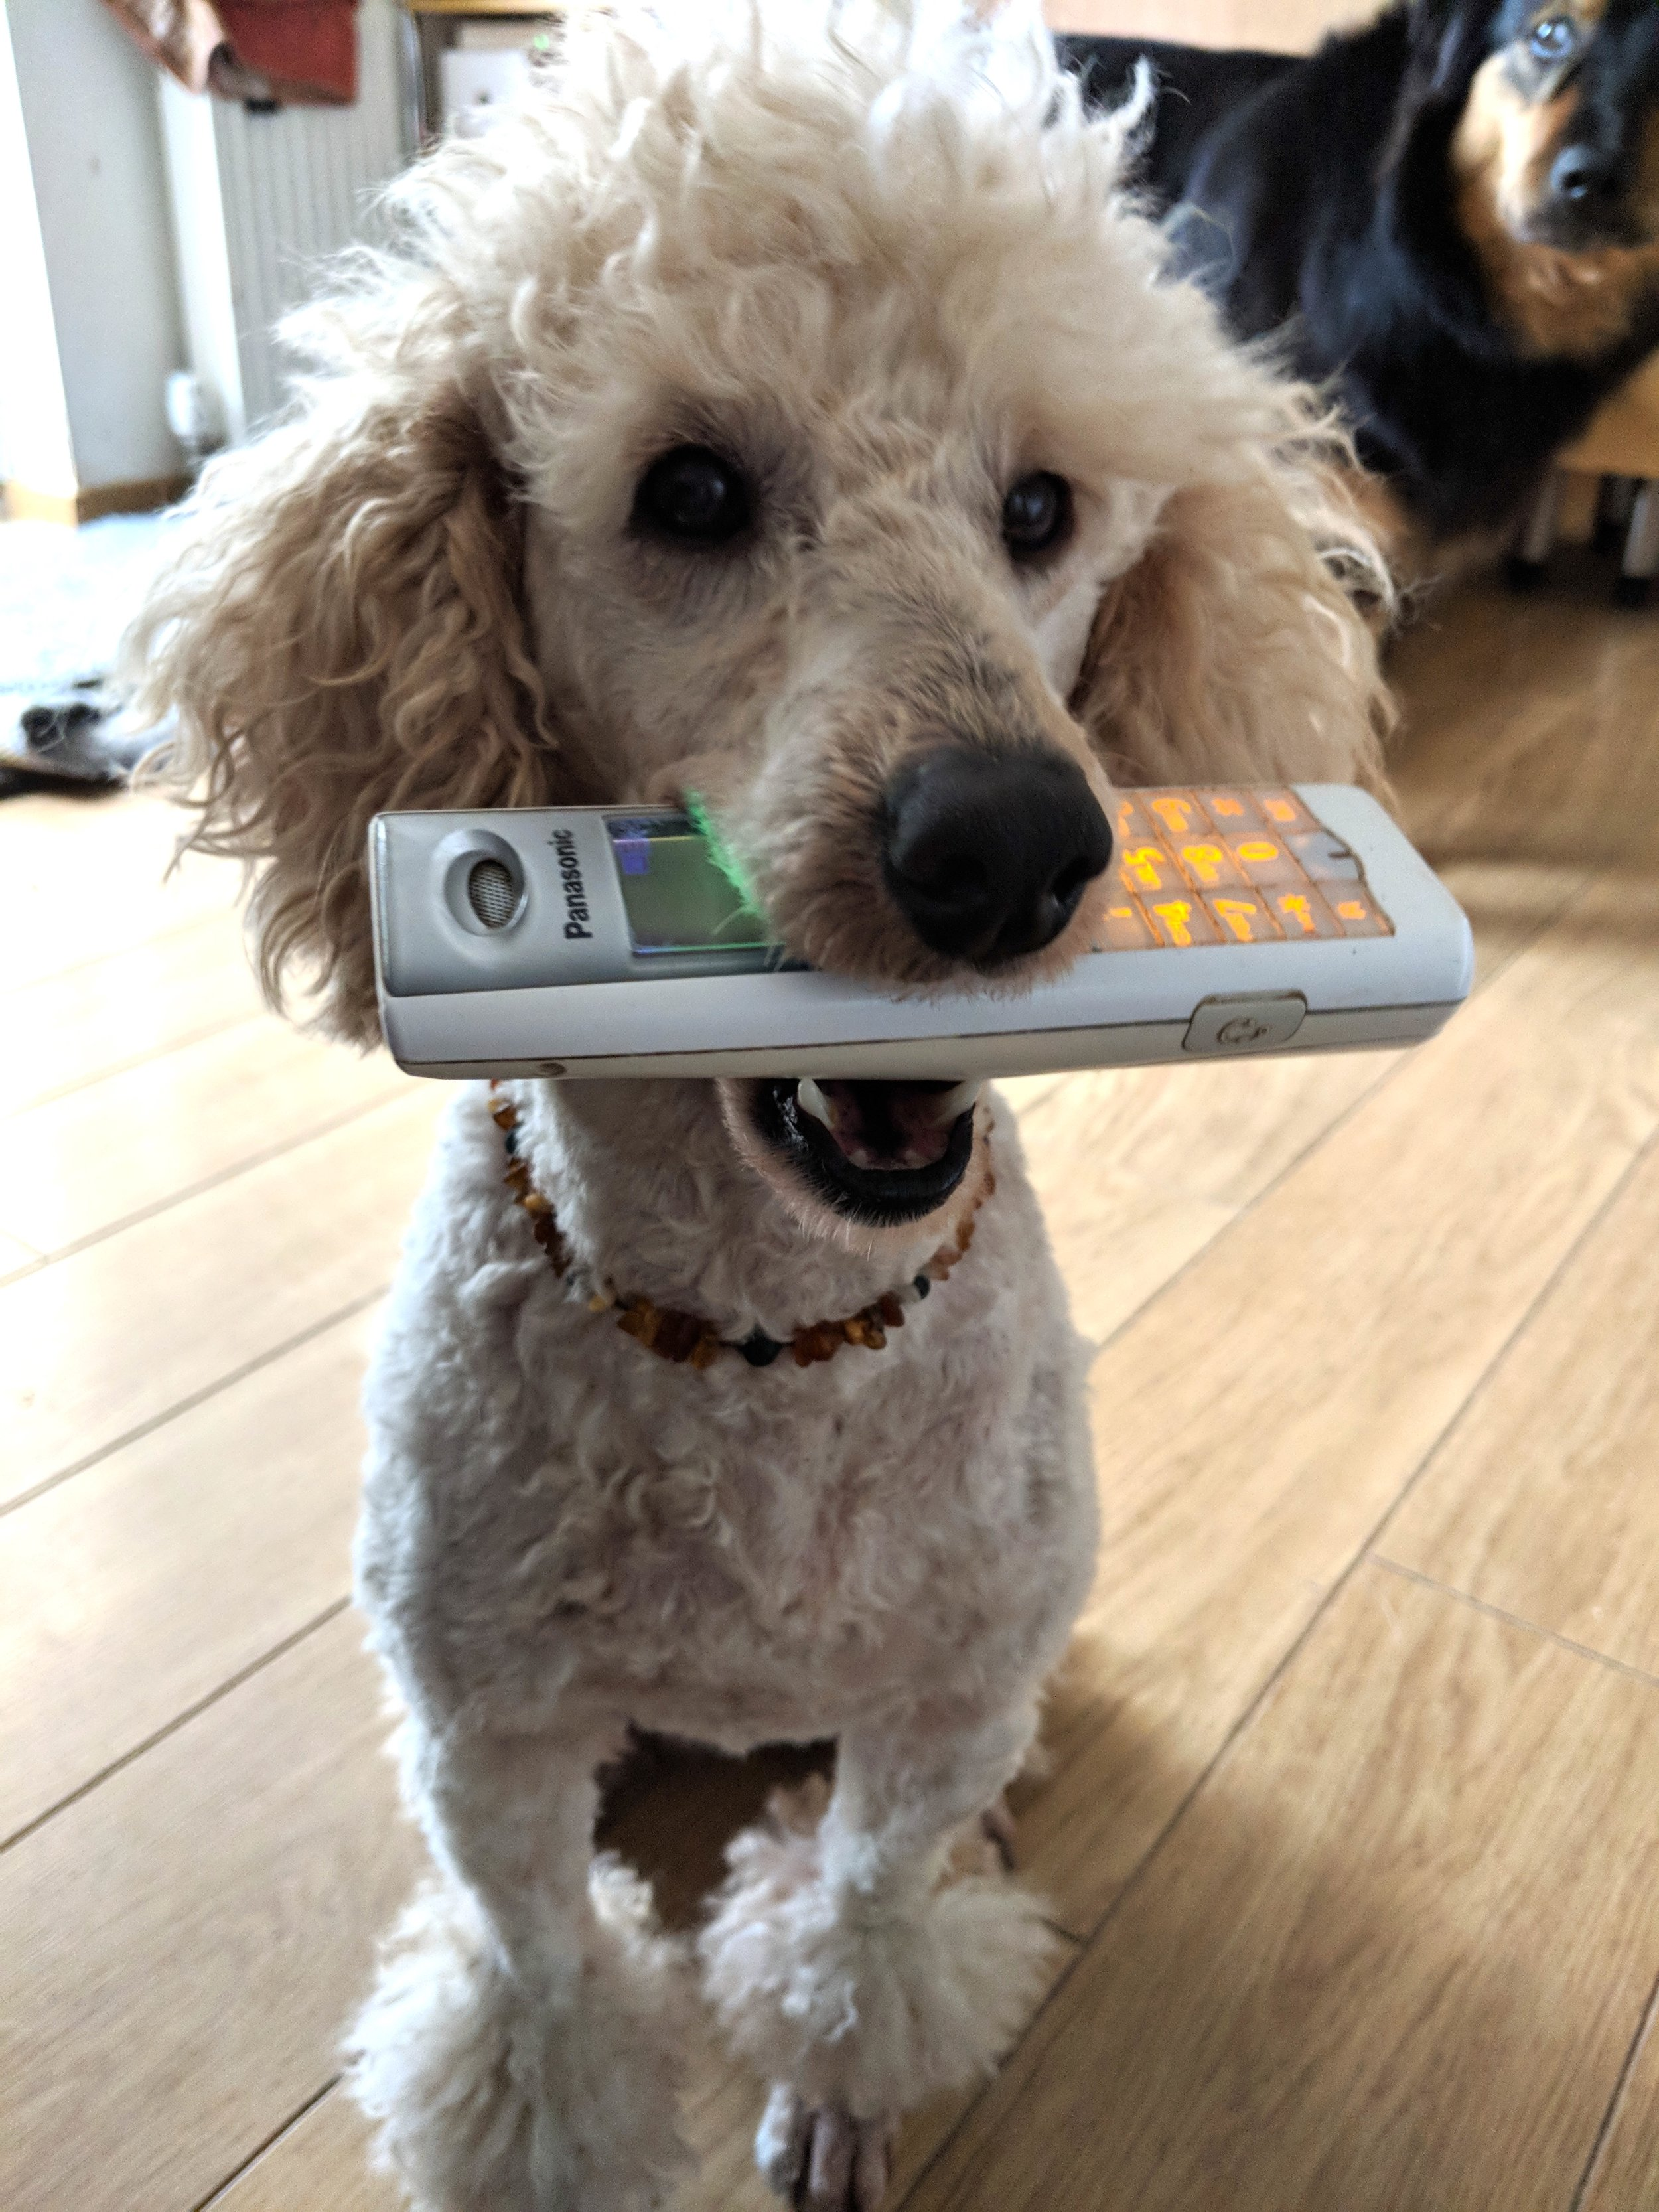 Lost your car keys? Get your dog to find them for you